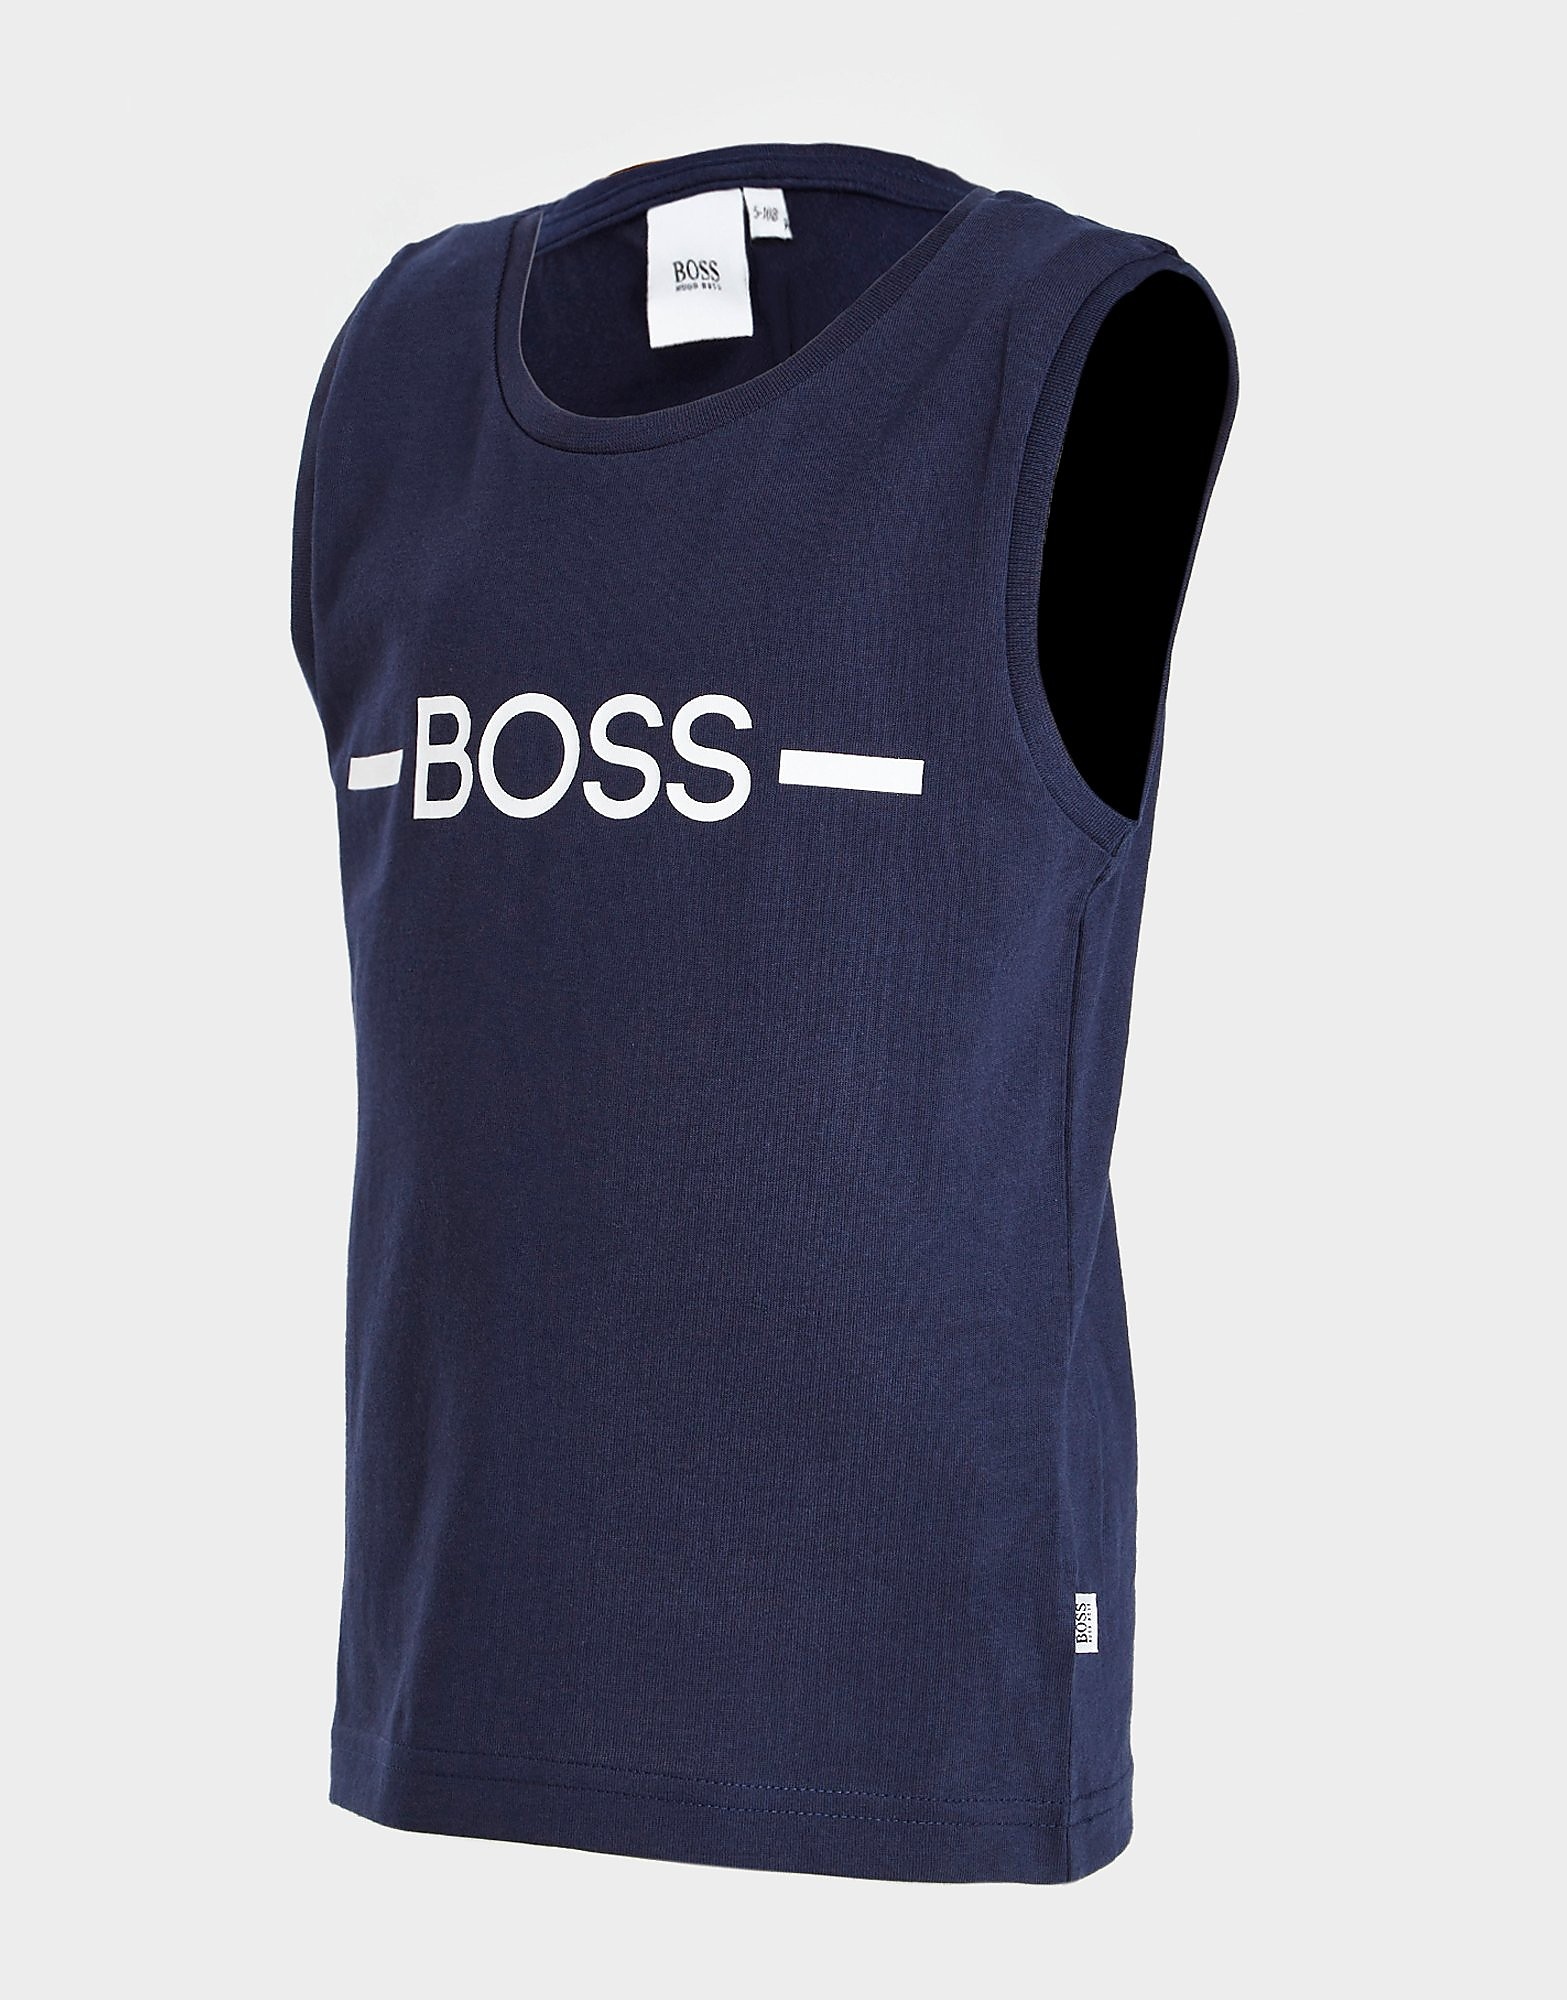 JD AFC Bournemouth 2016/17 Third Kit Children